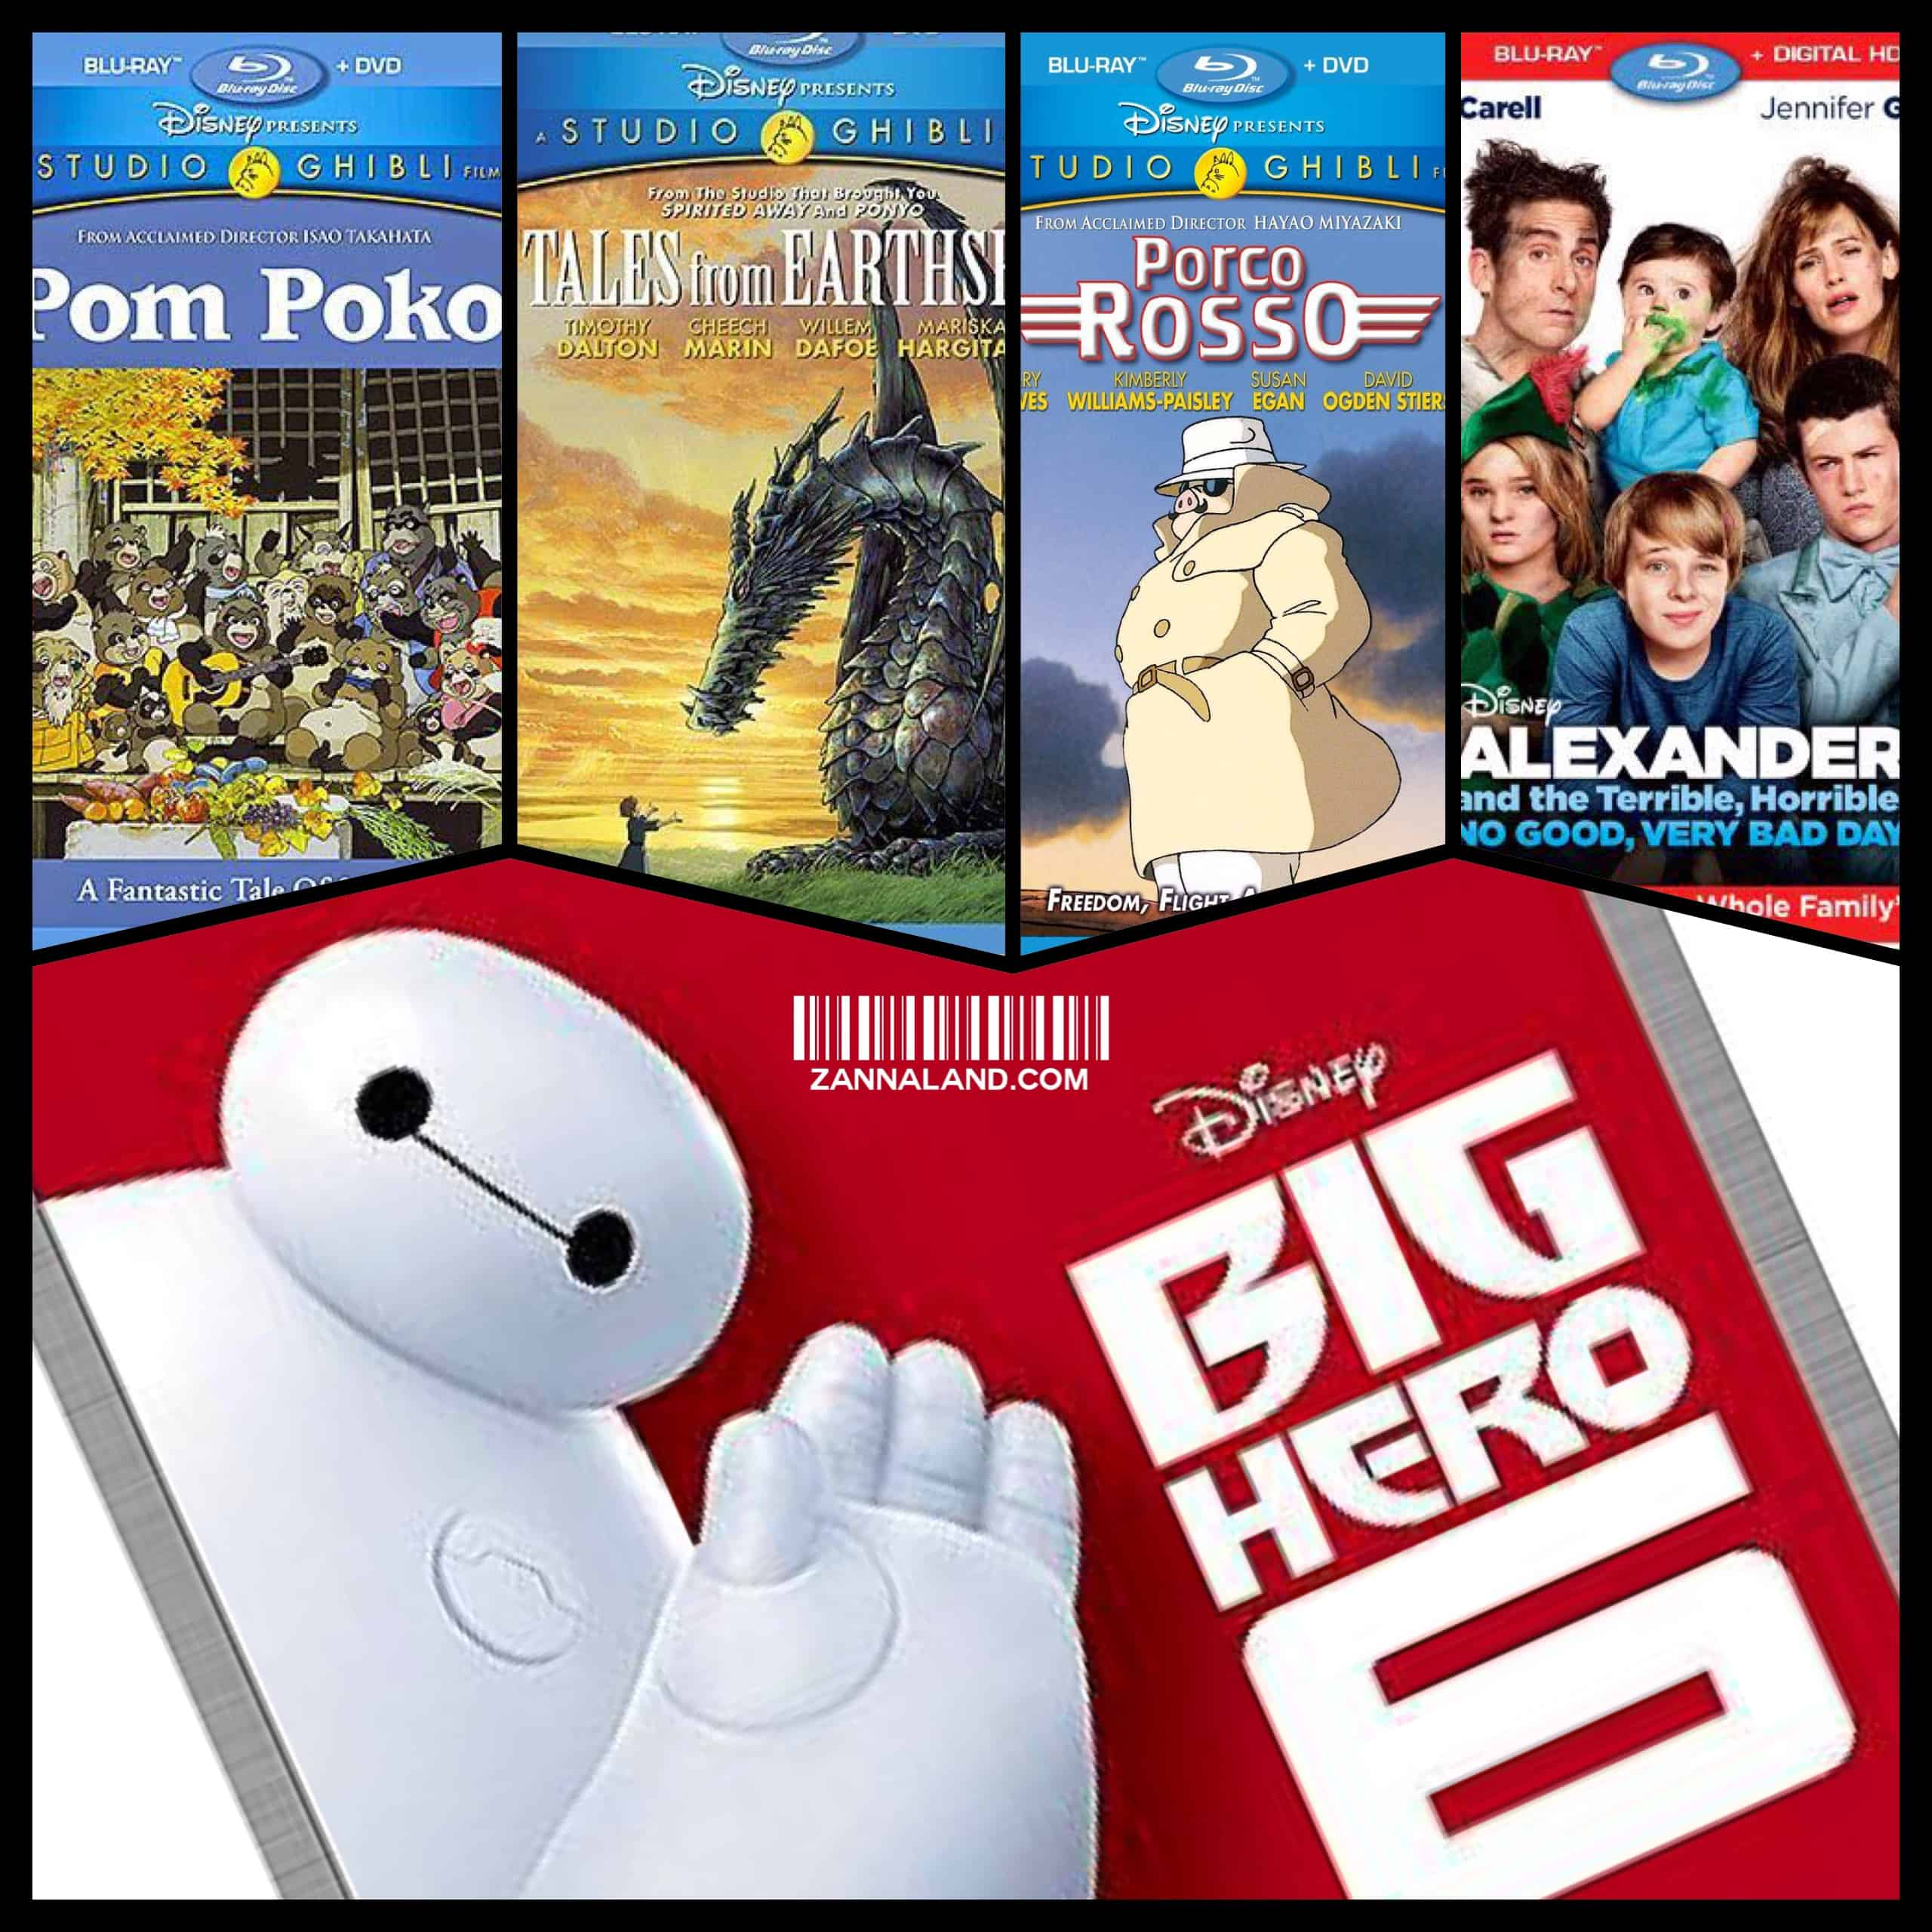 This has been a busy few weeks for Disney DVD and Blu-ray releases, and I think you'll find there's something for everyone in the list below. First, a trio of Studio Ghibli films are now available in beautiful HD picture and sound. Pom Poko, Porco Rosso, and Tales from Earthsea […]